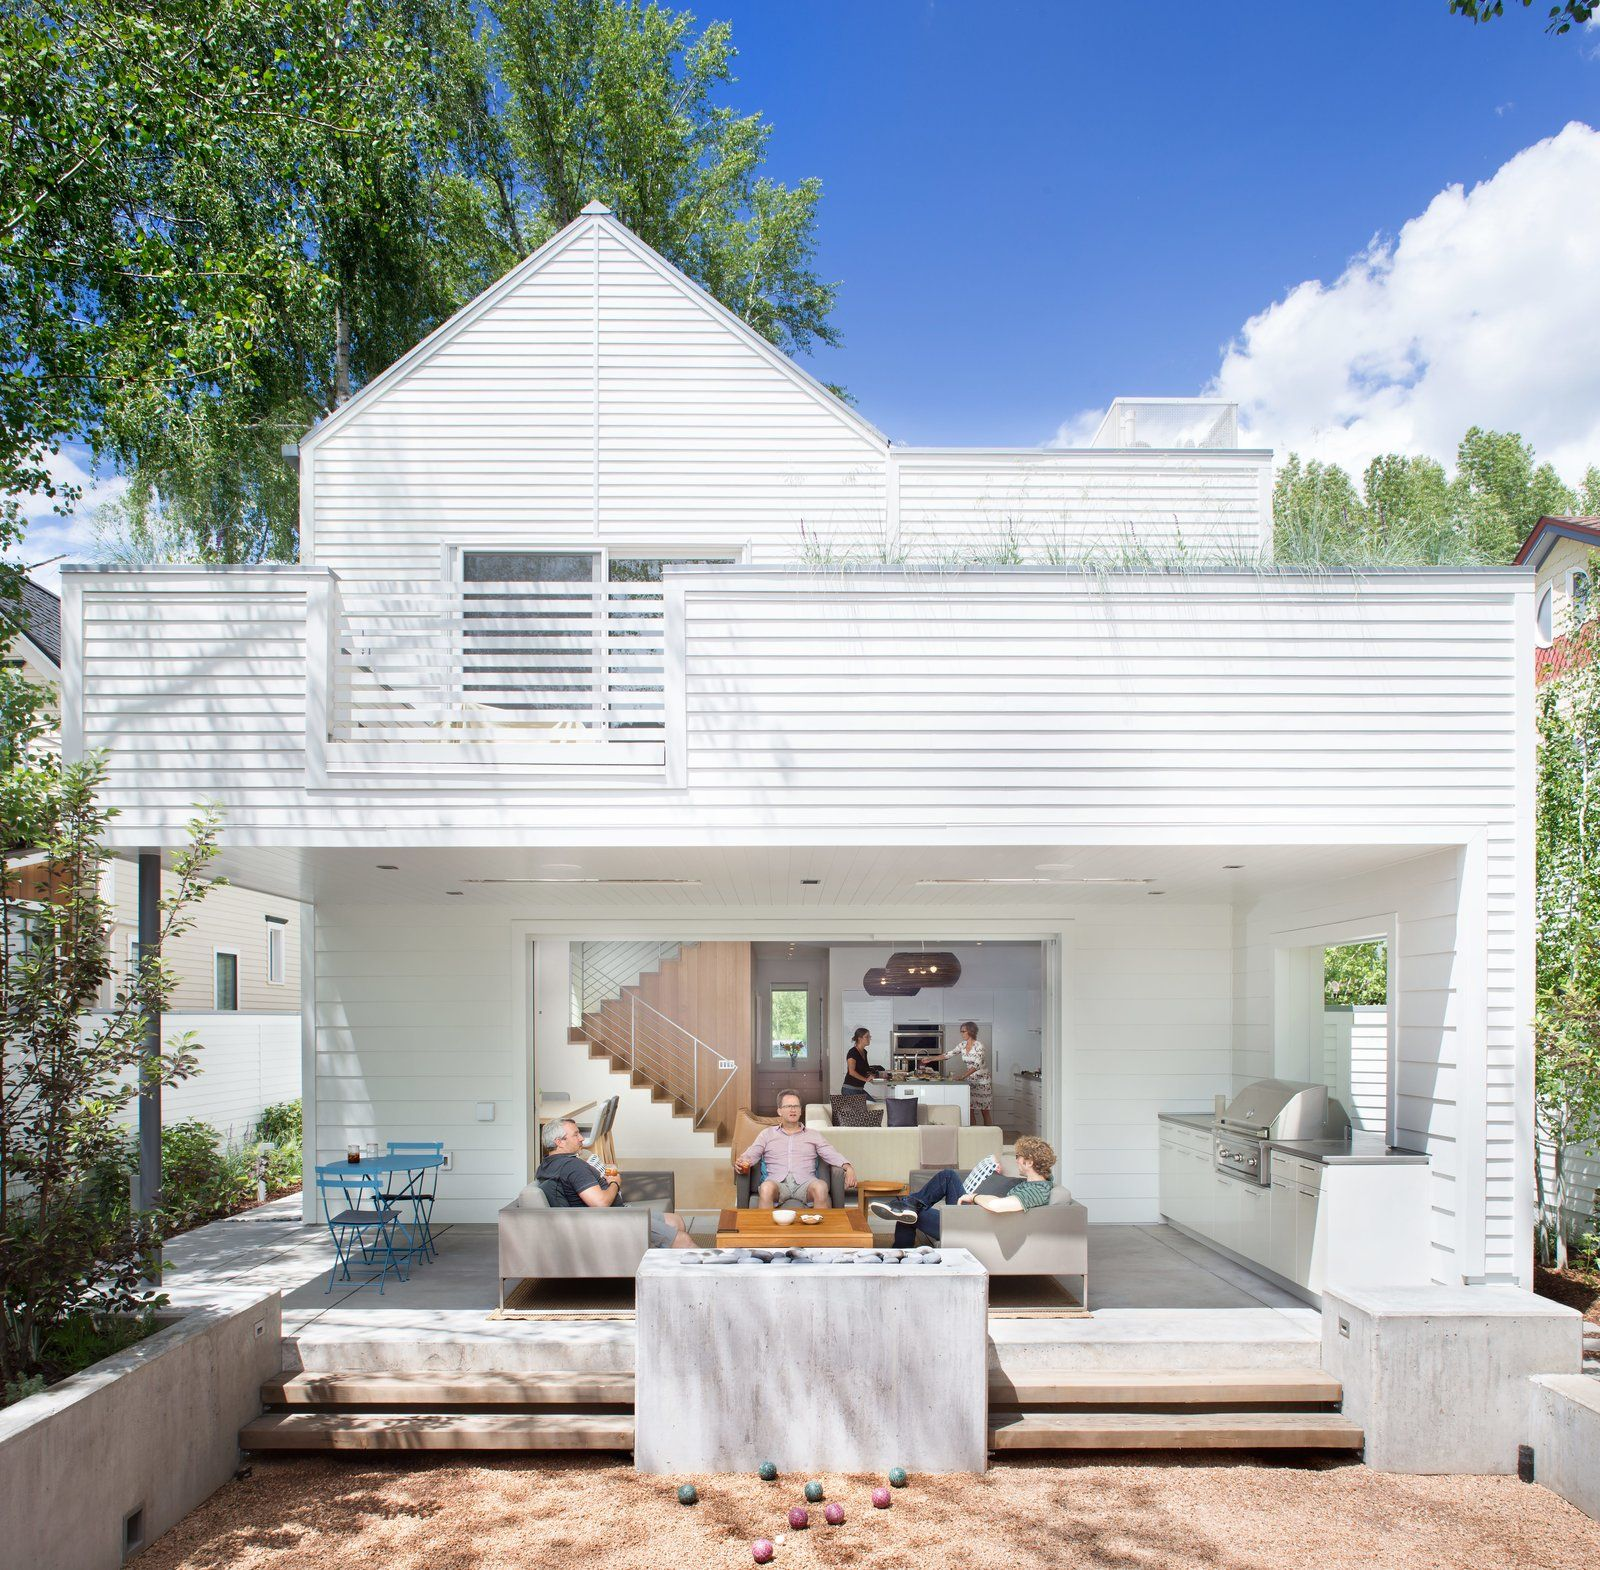 How One Aspen House Lives Up to LEED | Aspen properties, Sustainable ...